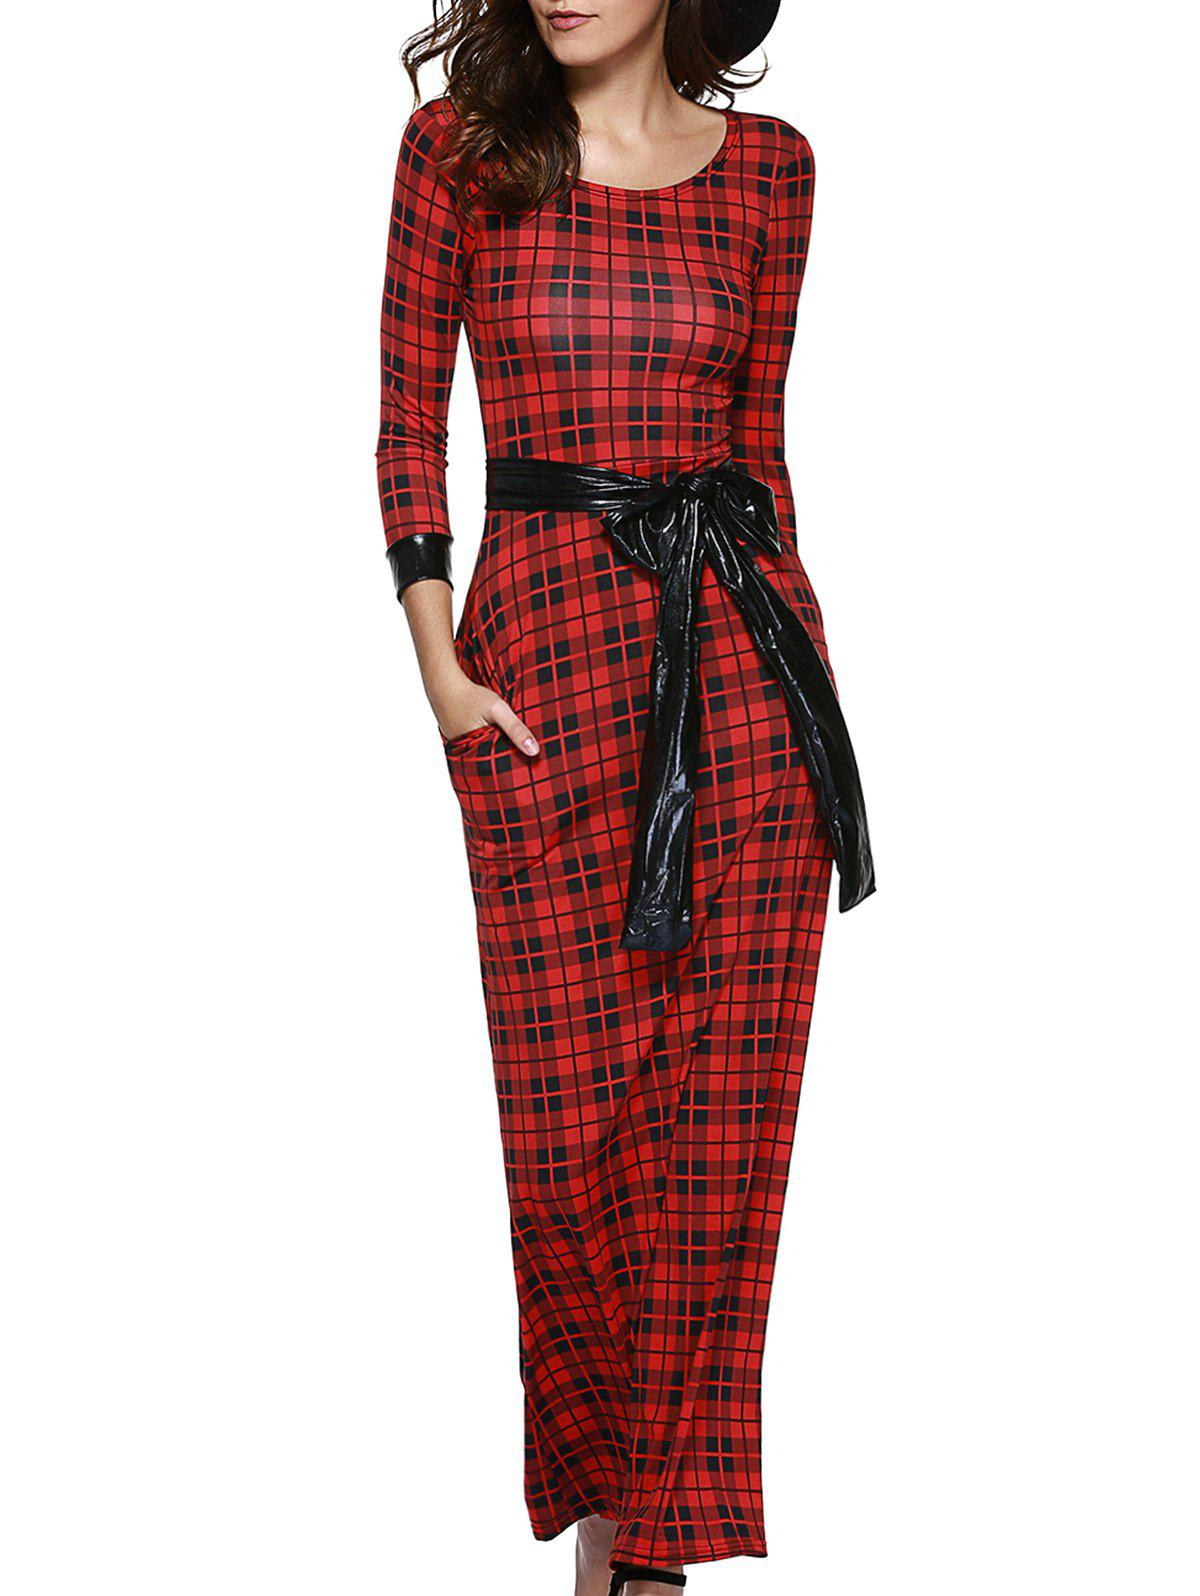 Retro Womens Plaid Belted Maxi Dress